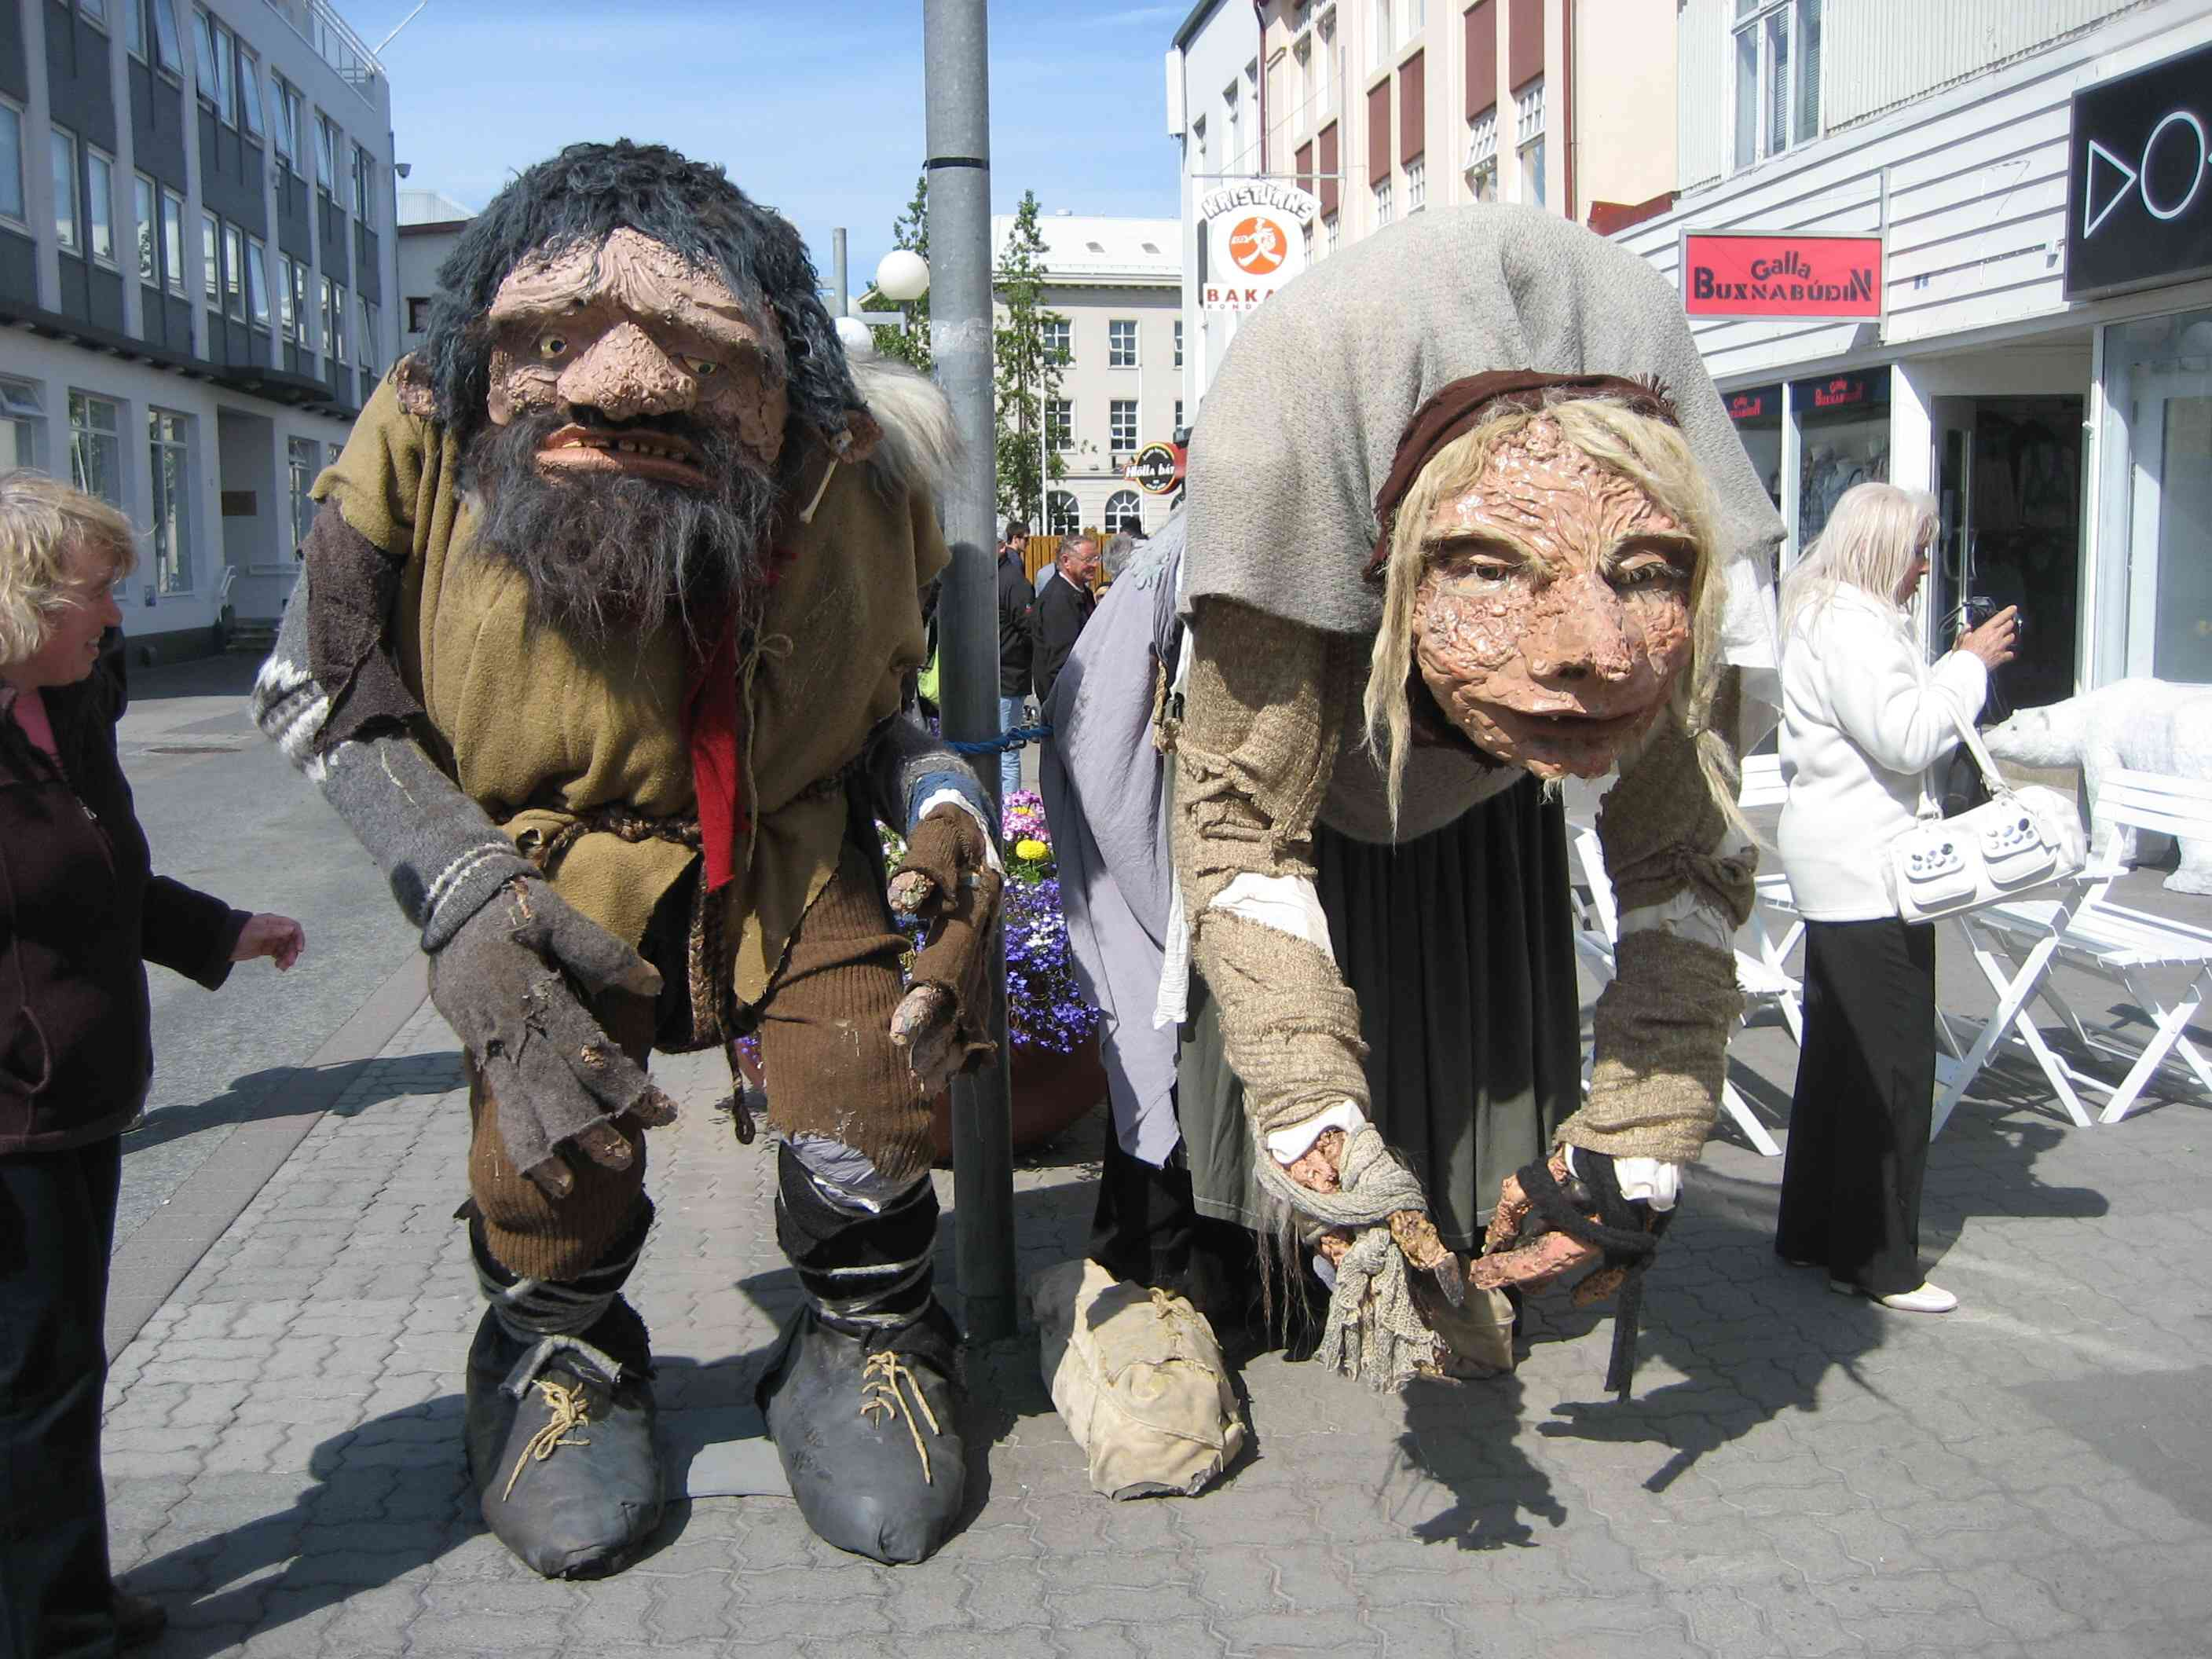 Grýla and her husband Leppalúði, the Yule Lads' parents ©Av David, Akureyri https://commons.wikimedia.org/w/index.php?curid=24201042